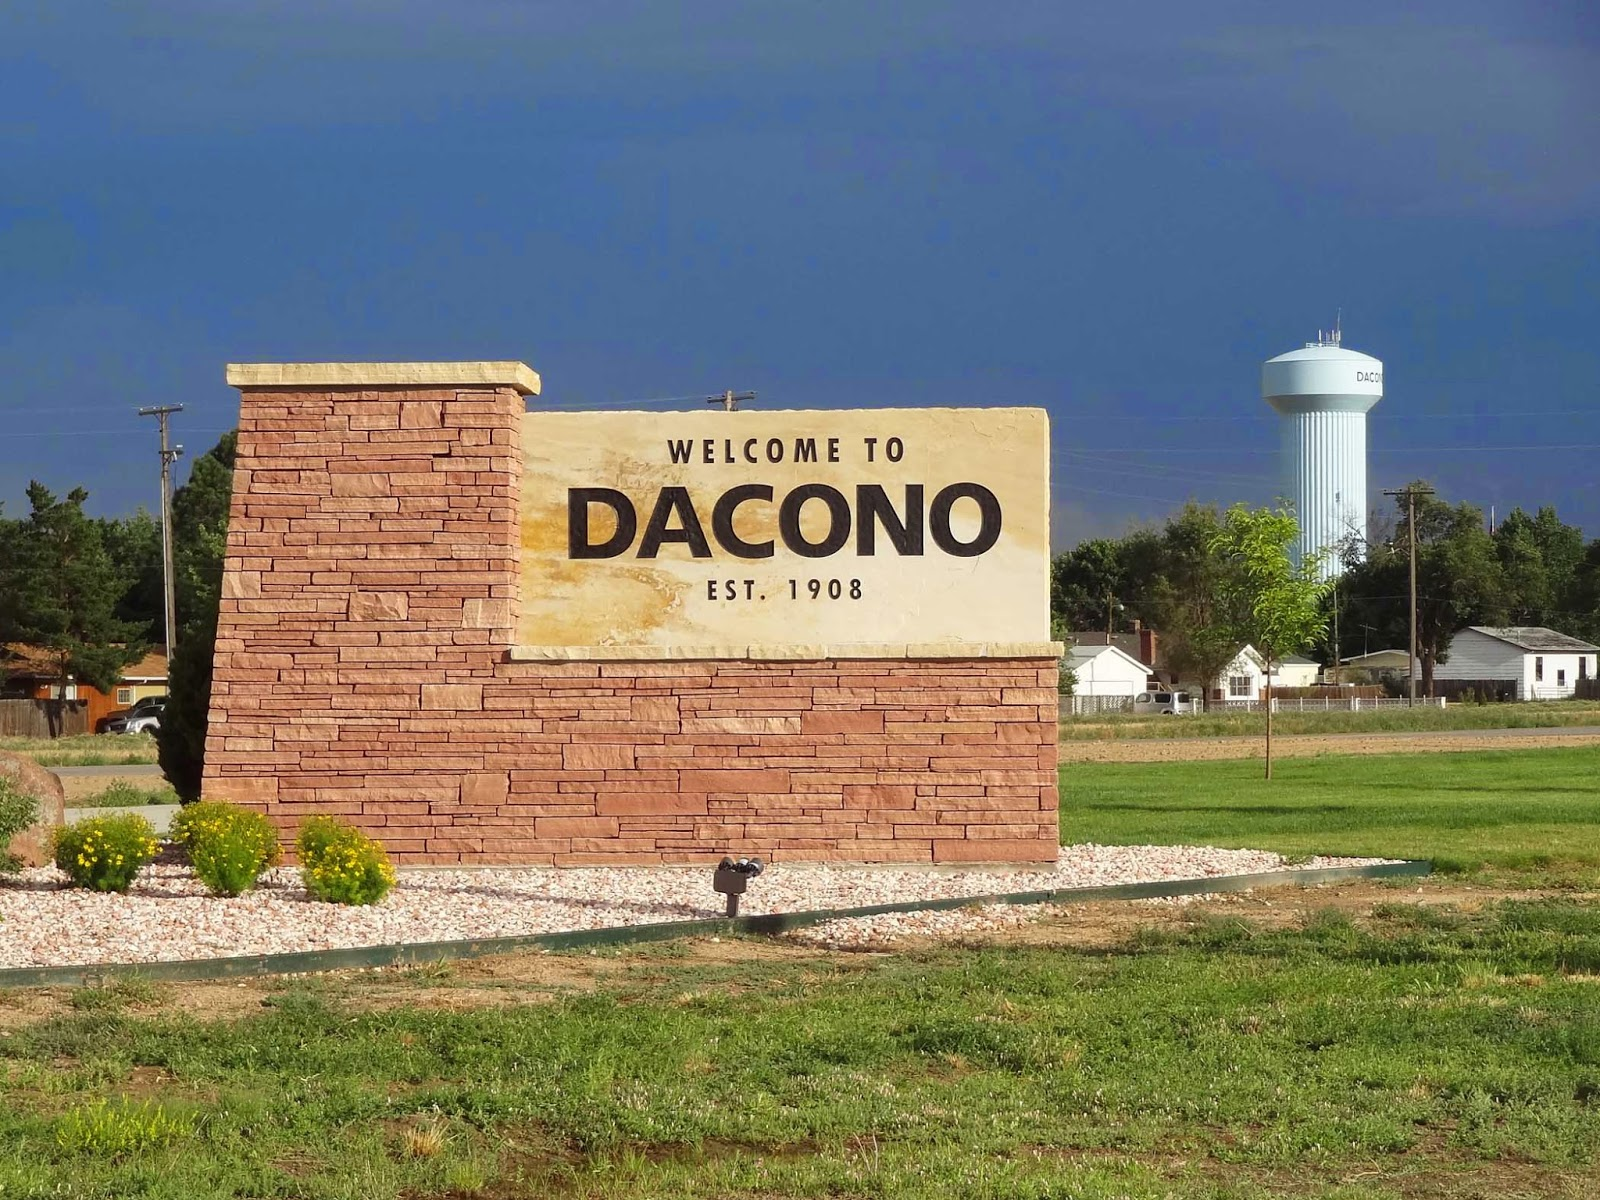 dacono dating site Currently, he lives in dacono, co this may contain online profiles, dating websites, forgotten social media accounts, and other potentially embarrassing profiles.